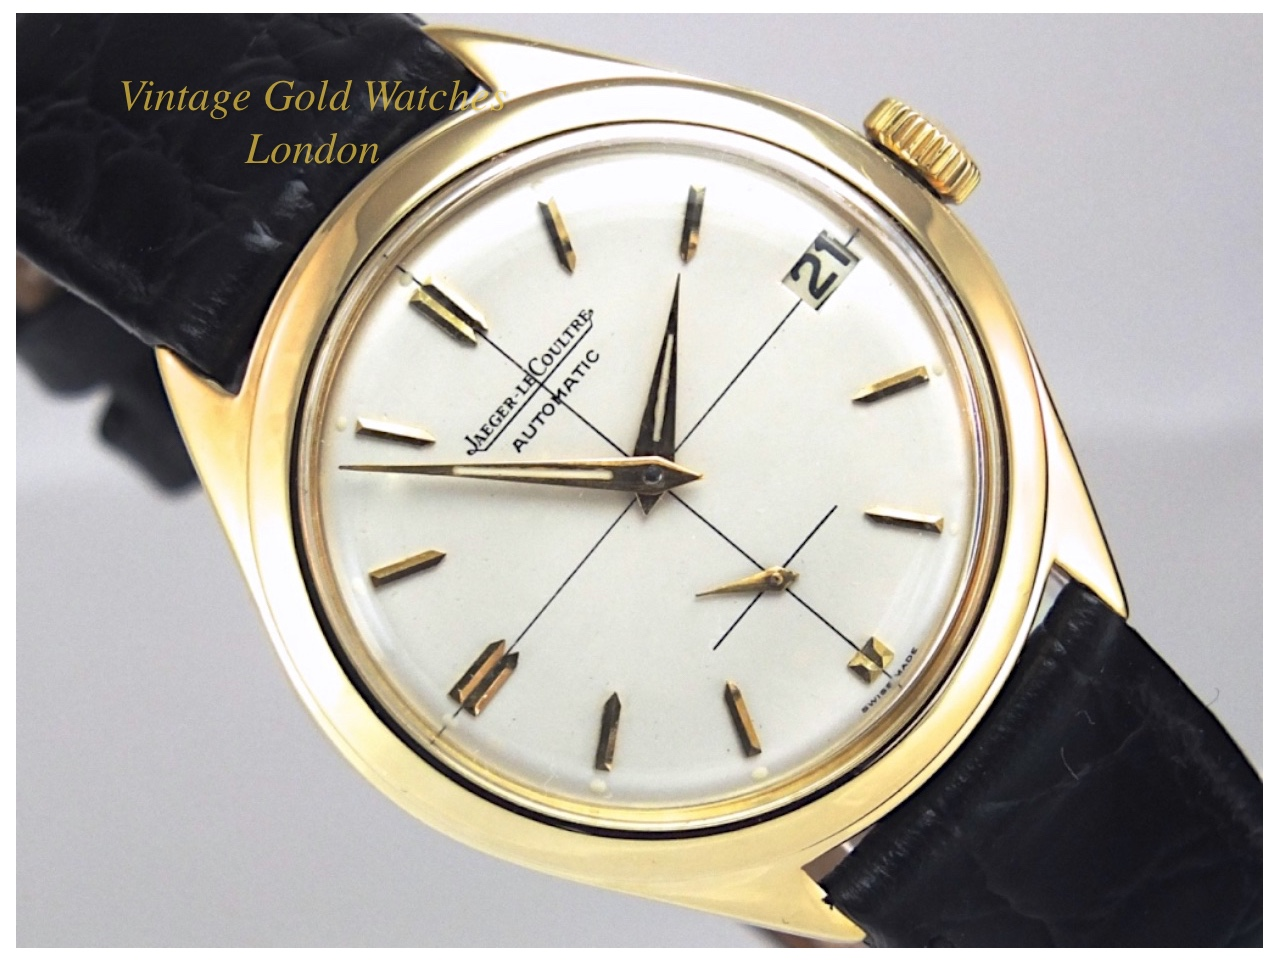 Jaeger lecoultre 18k automatic 1957 sorry now sold 12th sept 2016 vintage gold watches for Vintage gold watch